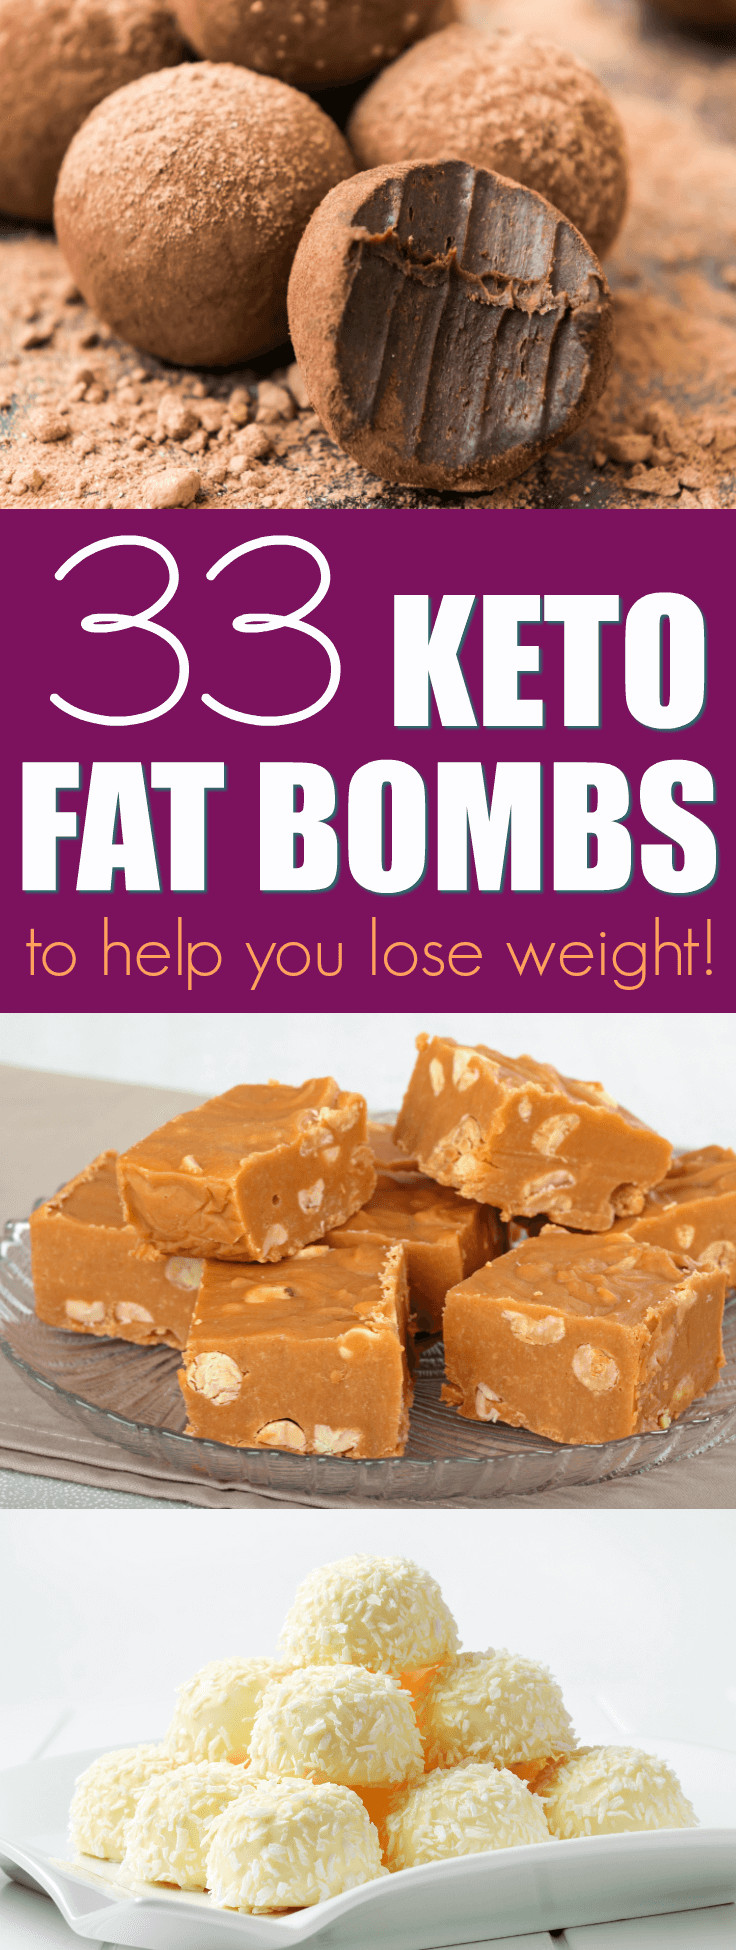 Ketosis Diet Fat Bombs  33 Must Try Fat Bombs for Keto or Low Carb Diets